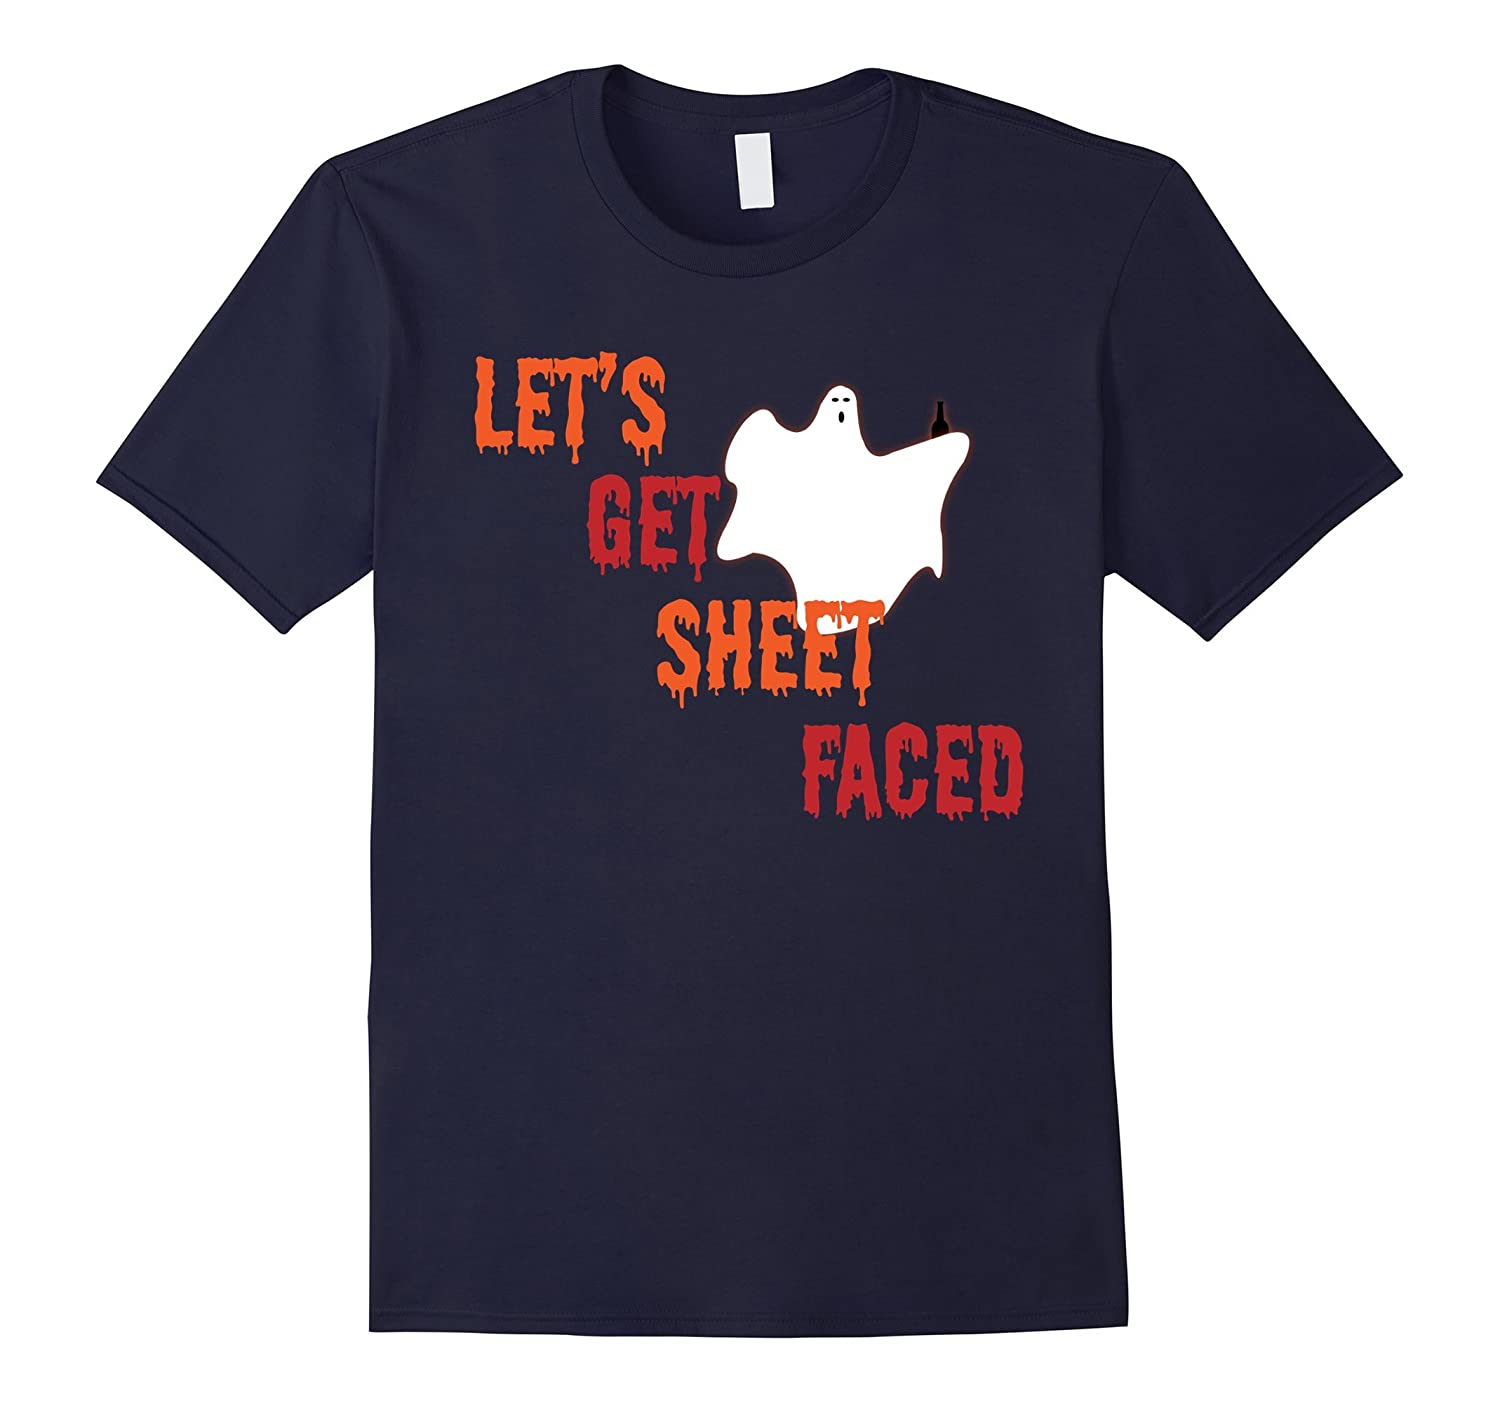 Let's get sheet faced ghost halloween tshirt-FL